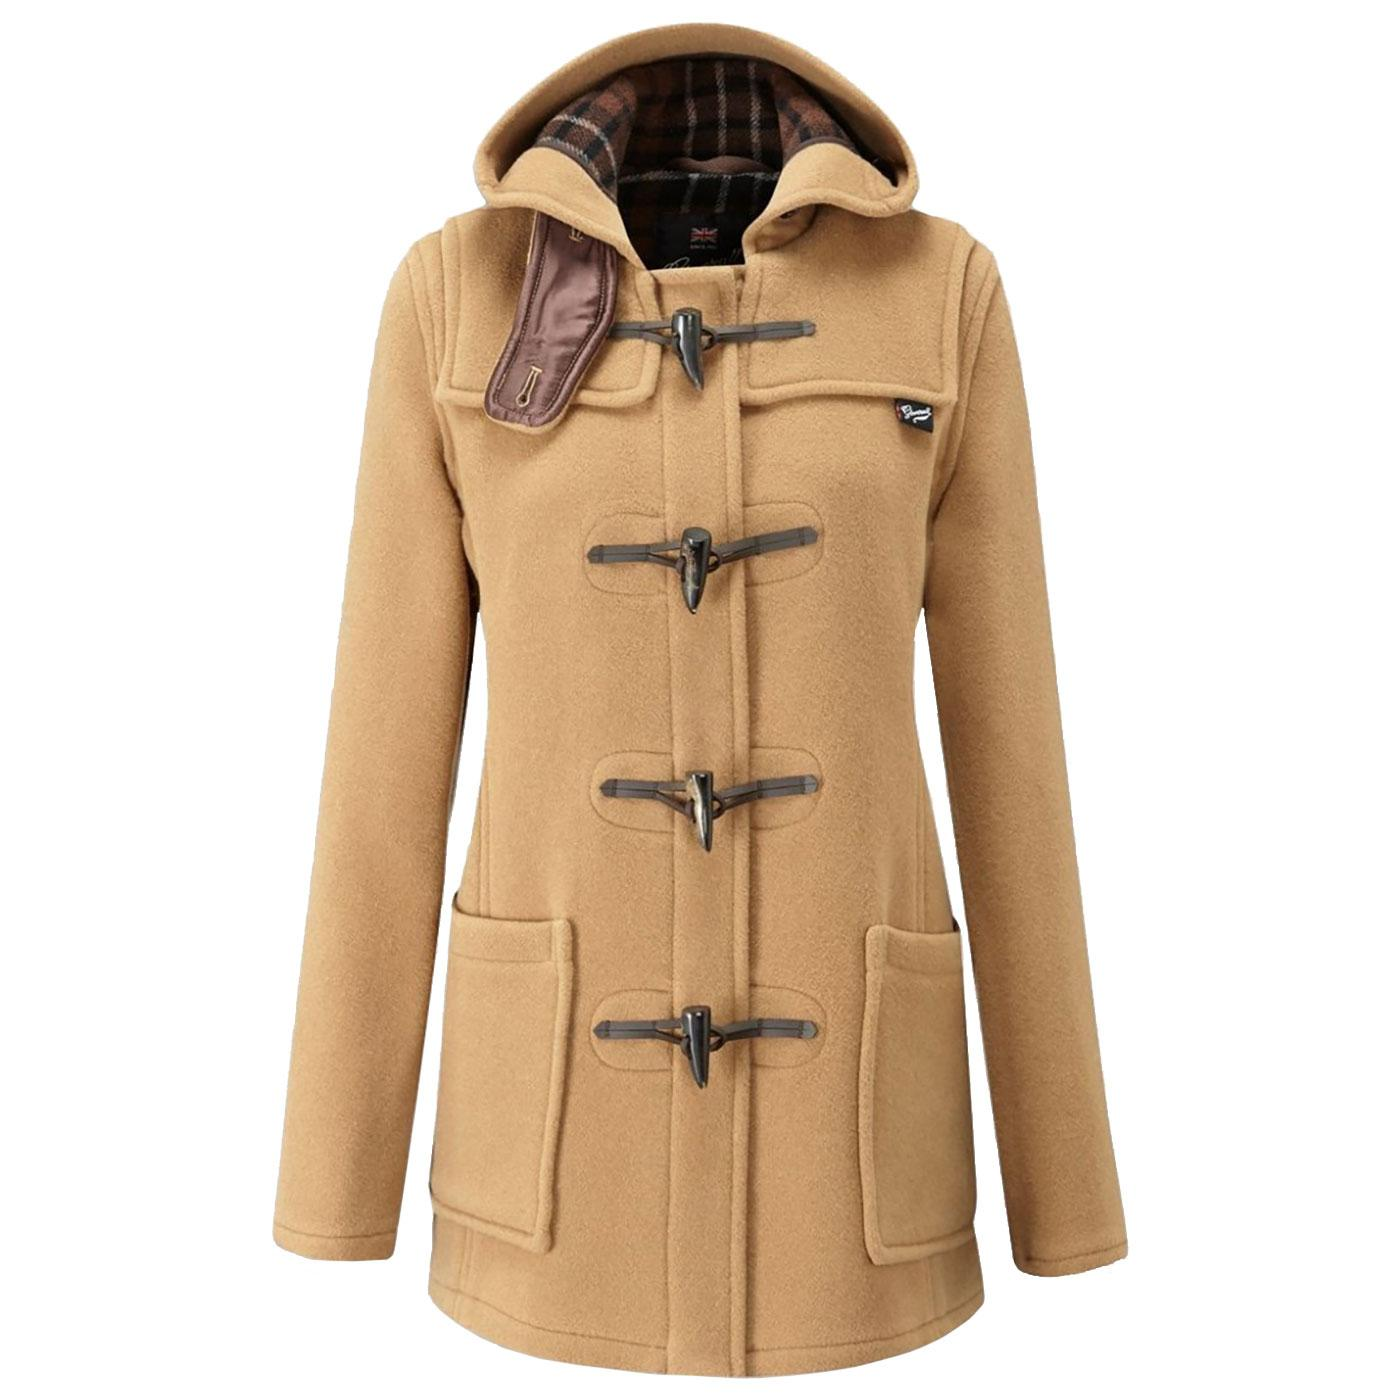 GLOVERALL Women's Retro Fitted Short Duffle Coat C